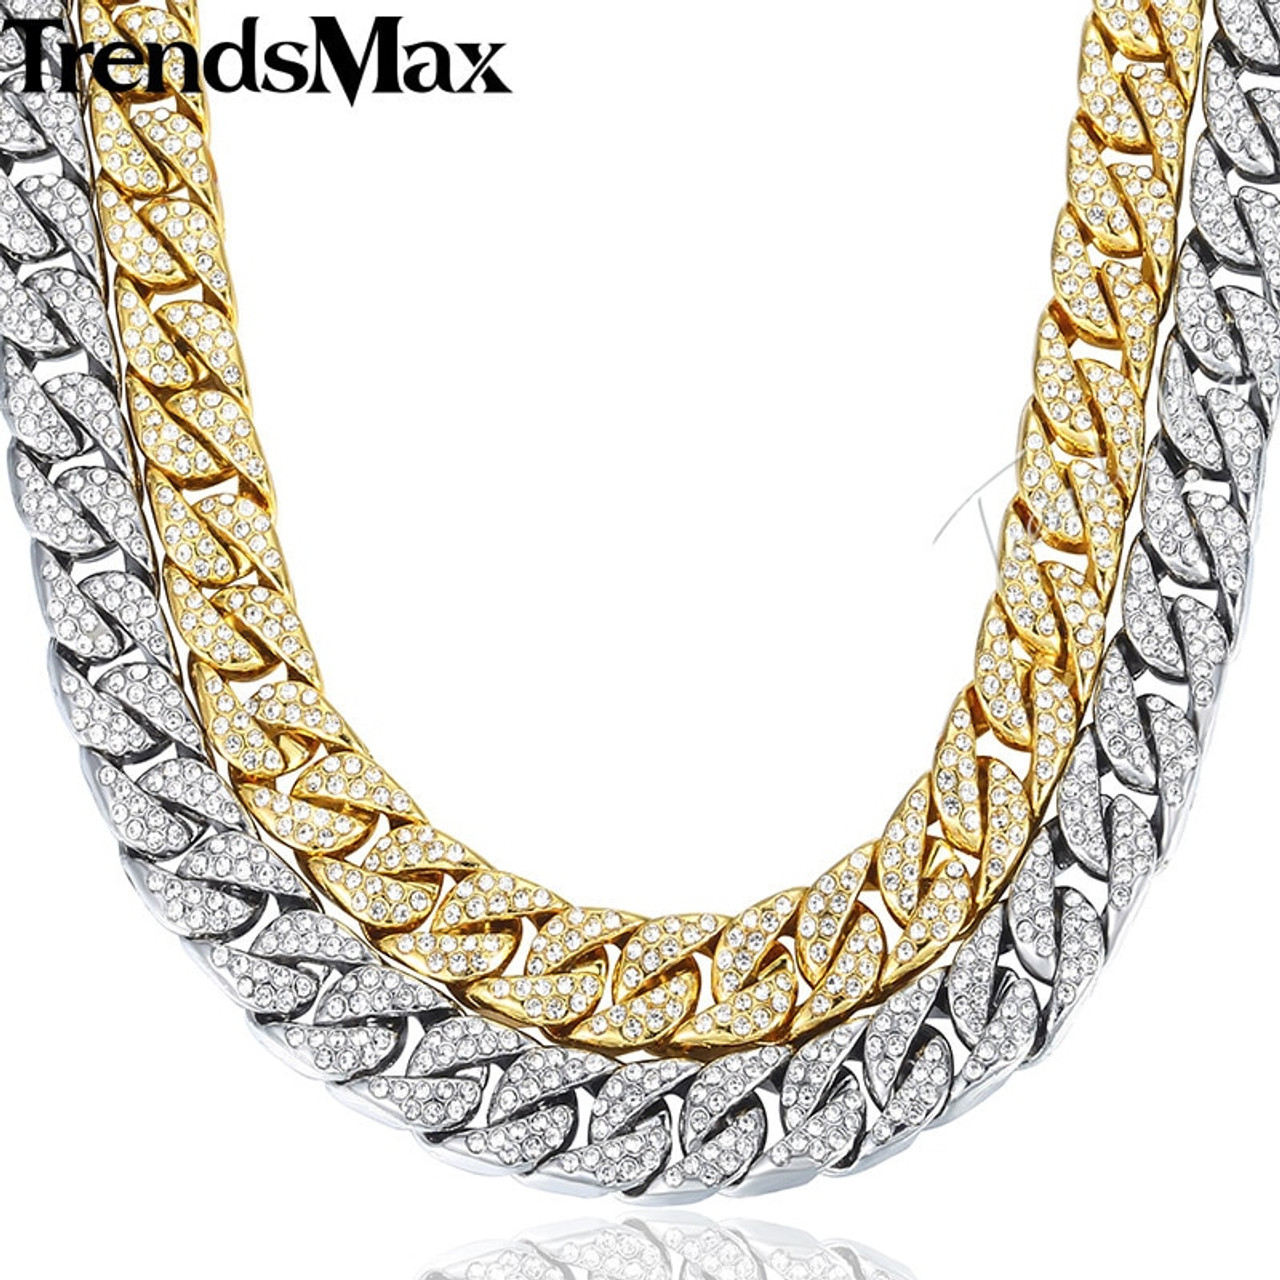 14mm Miami Curb Cuban Chain Necklace For Men Gold Silver Hip Hop Iced Out  Paved Rhinestones CZ Rapper Necklace Jewelry GN432 - OnshopDeals.Com 523616ca2